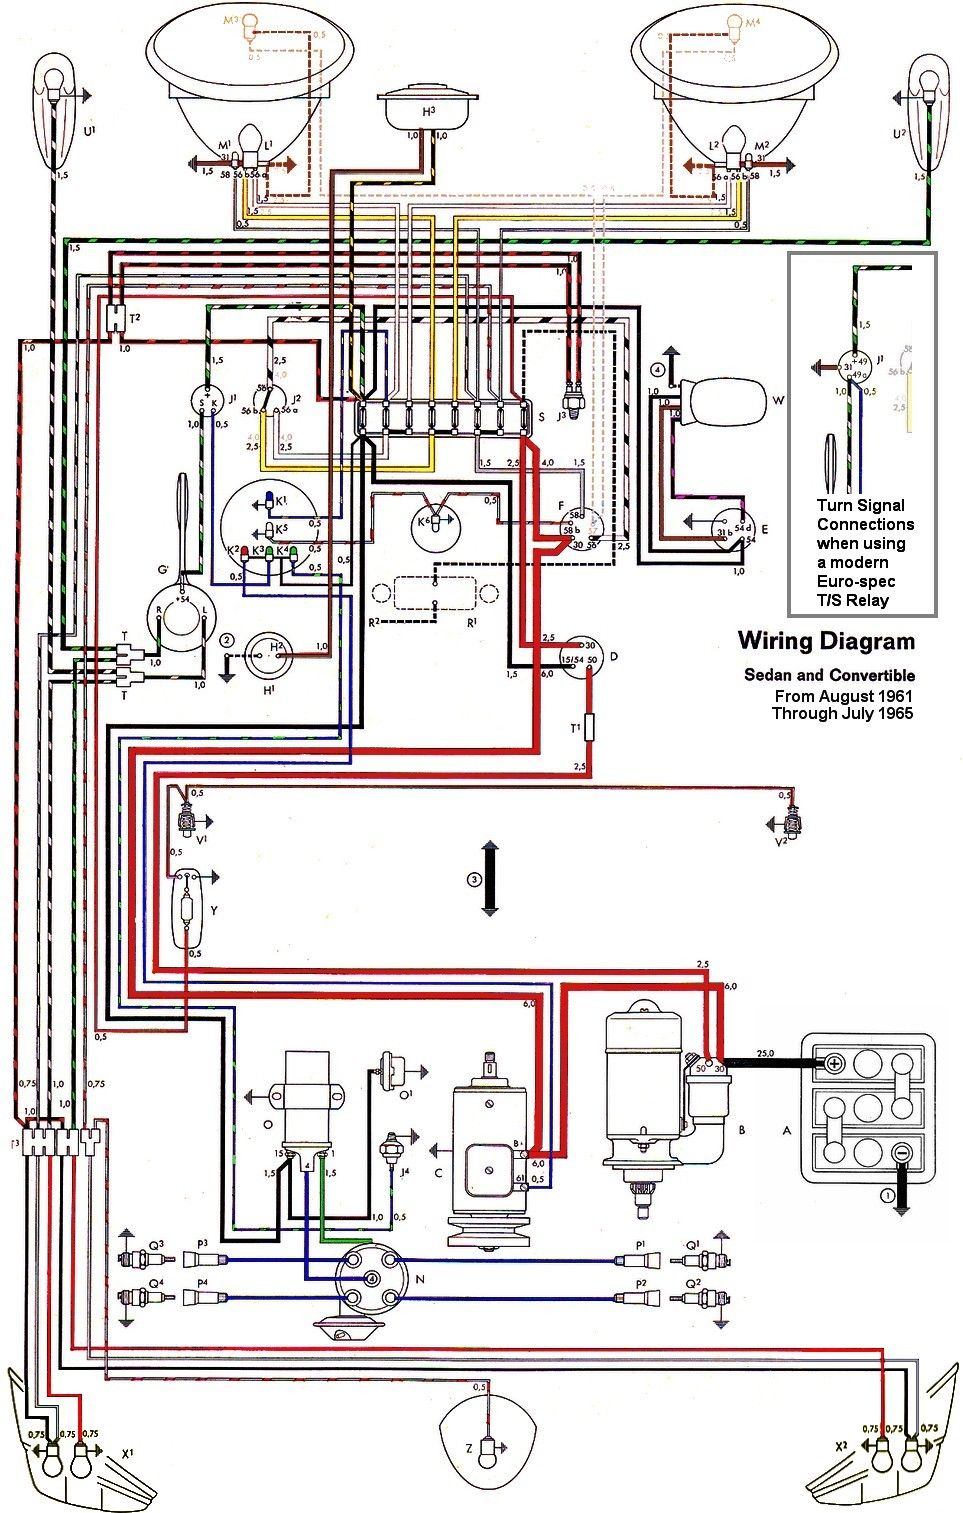 wiring diagram for volkswagen wiring diagram sheet wiring diagram for vw dune buggy wiring diagram for vw buggy [ 963 x 1513 Pixel ]